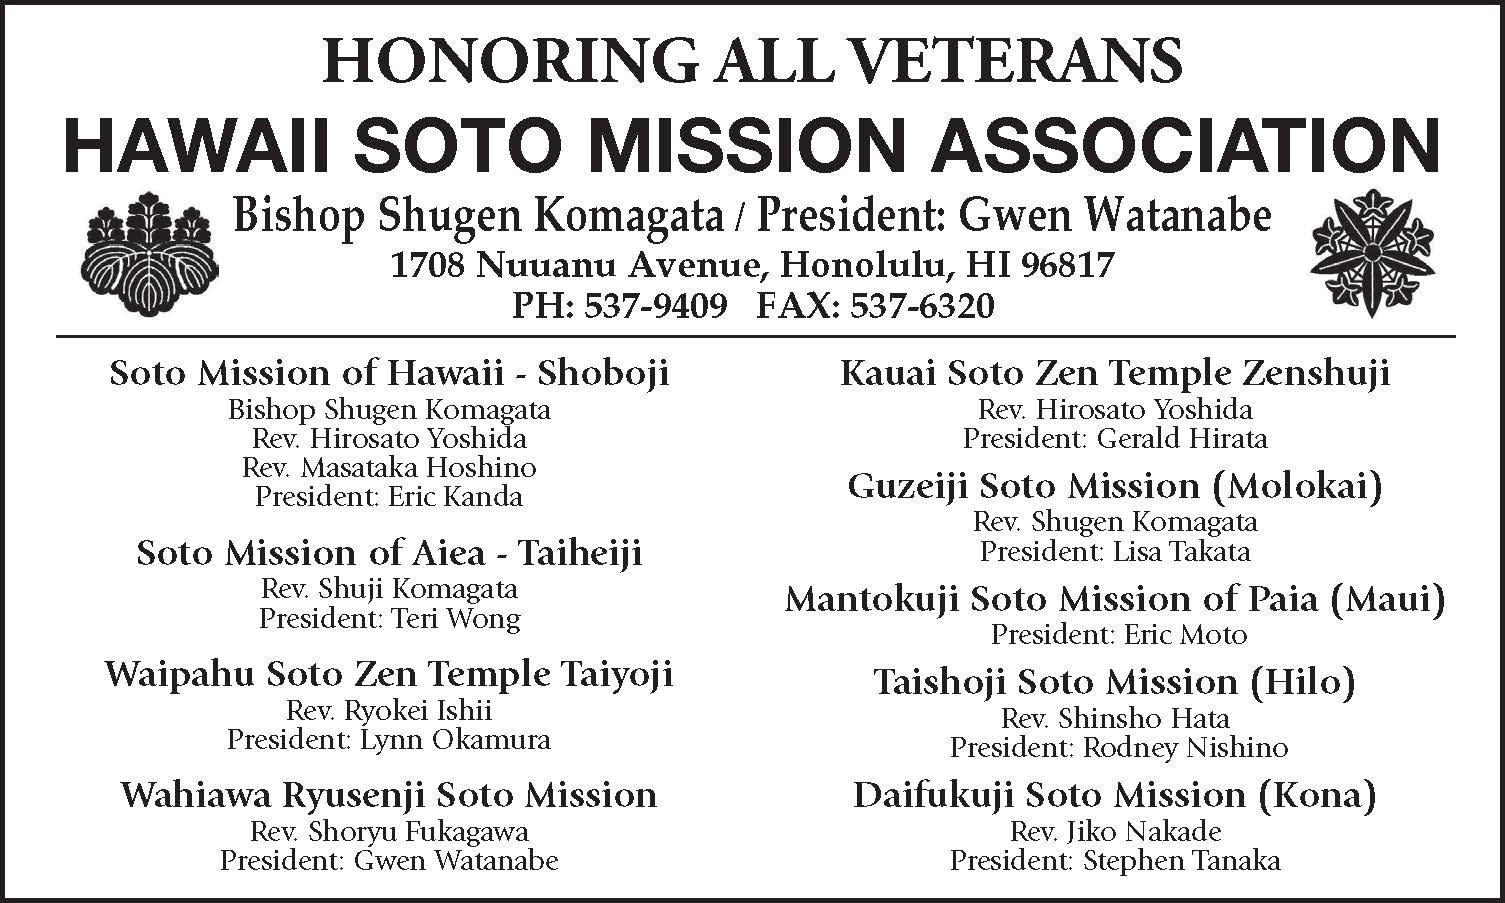 Honoring all veterans soto mission ad